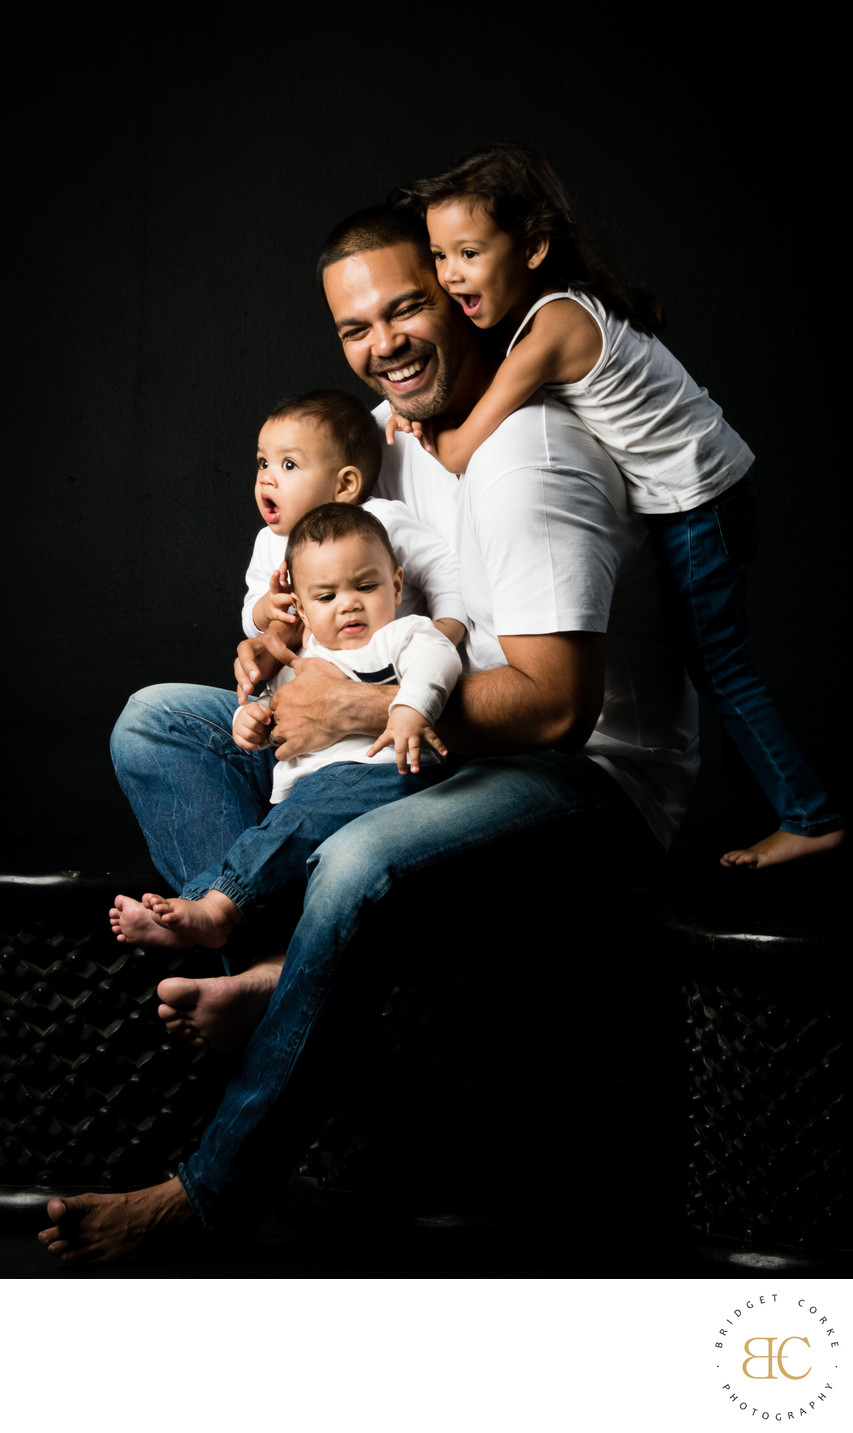 JOHANNESBURG: Top Family Photographer